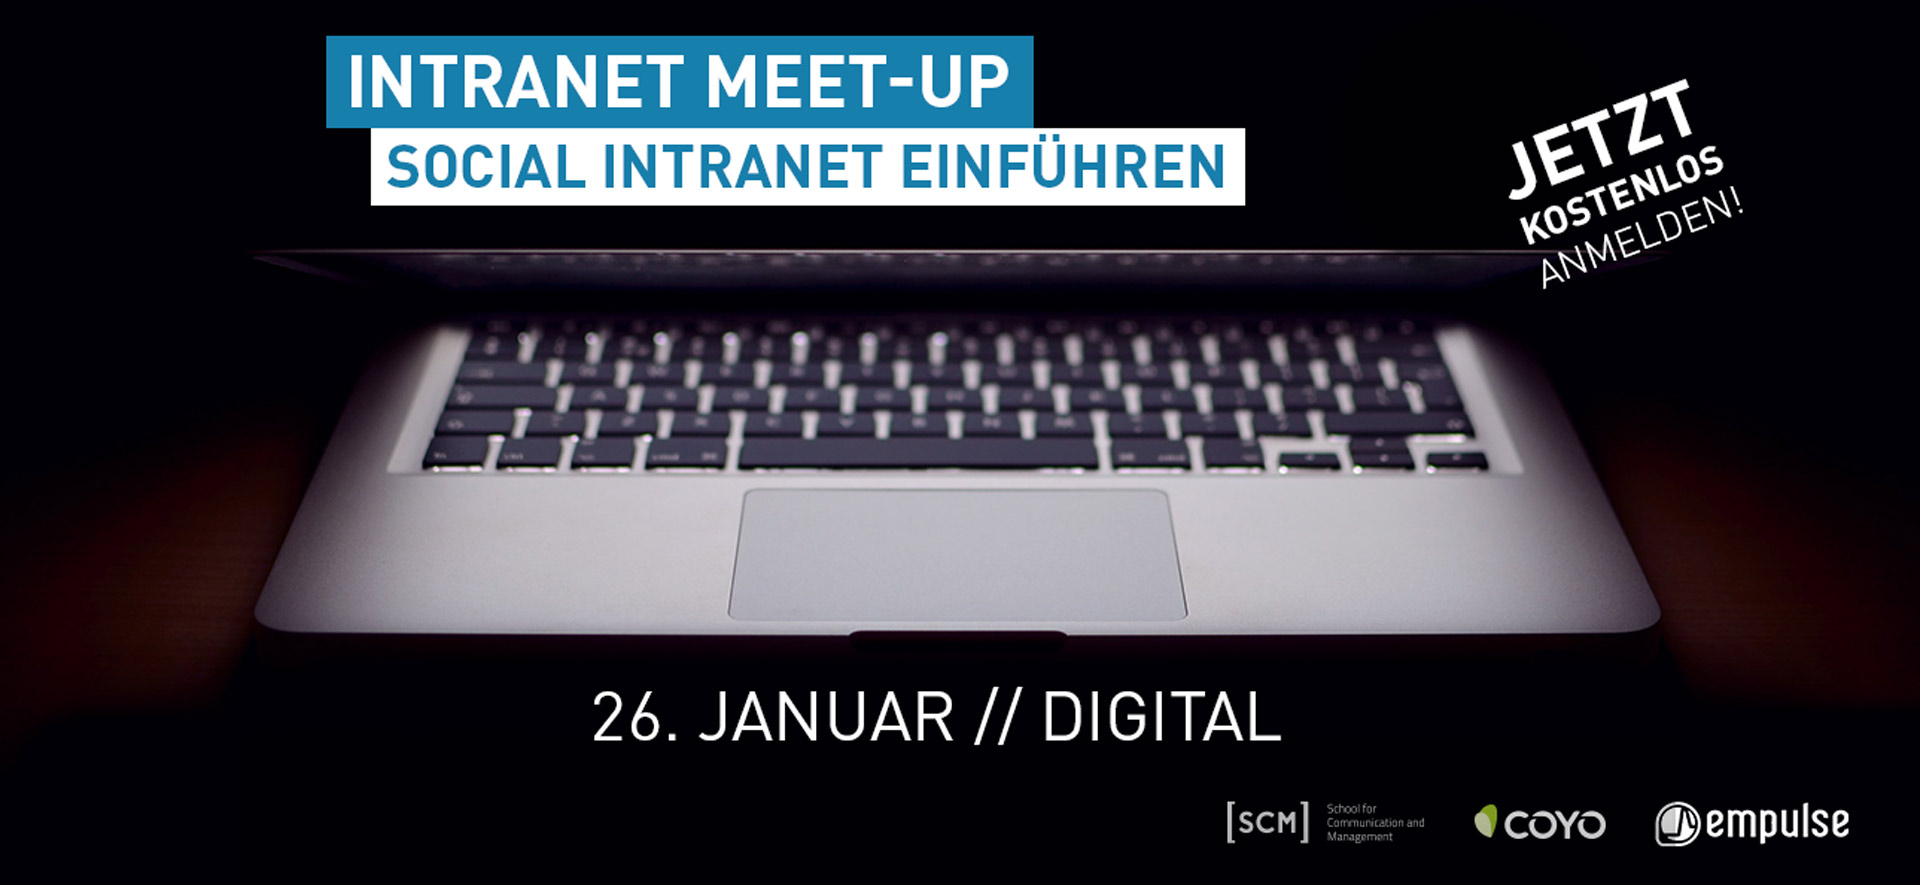 Intranet Meet-up: Social Intranet einführen